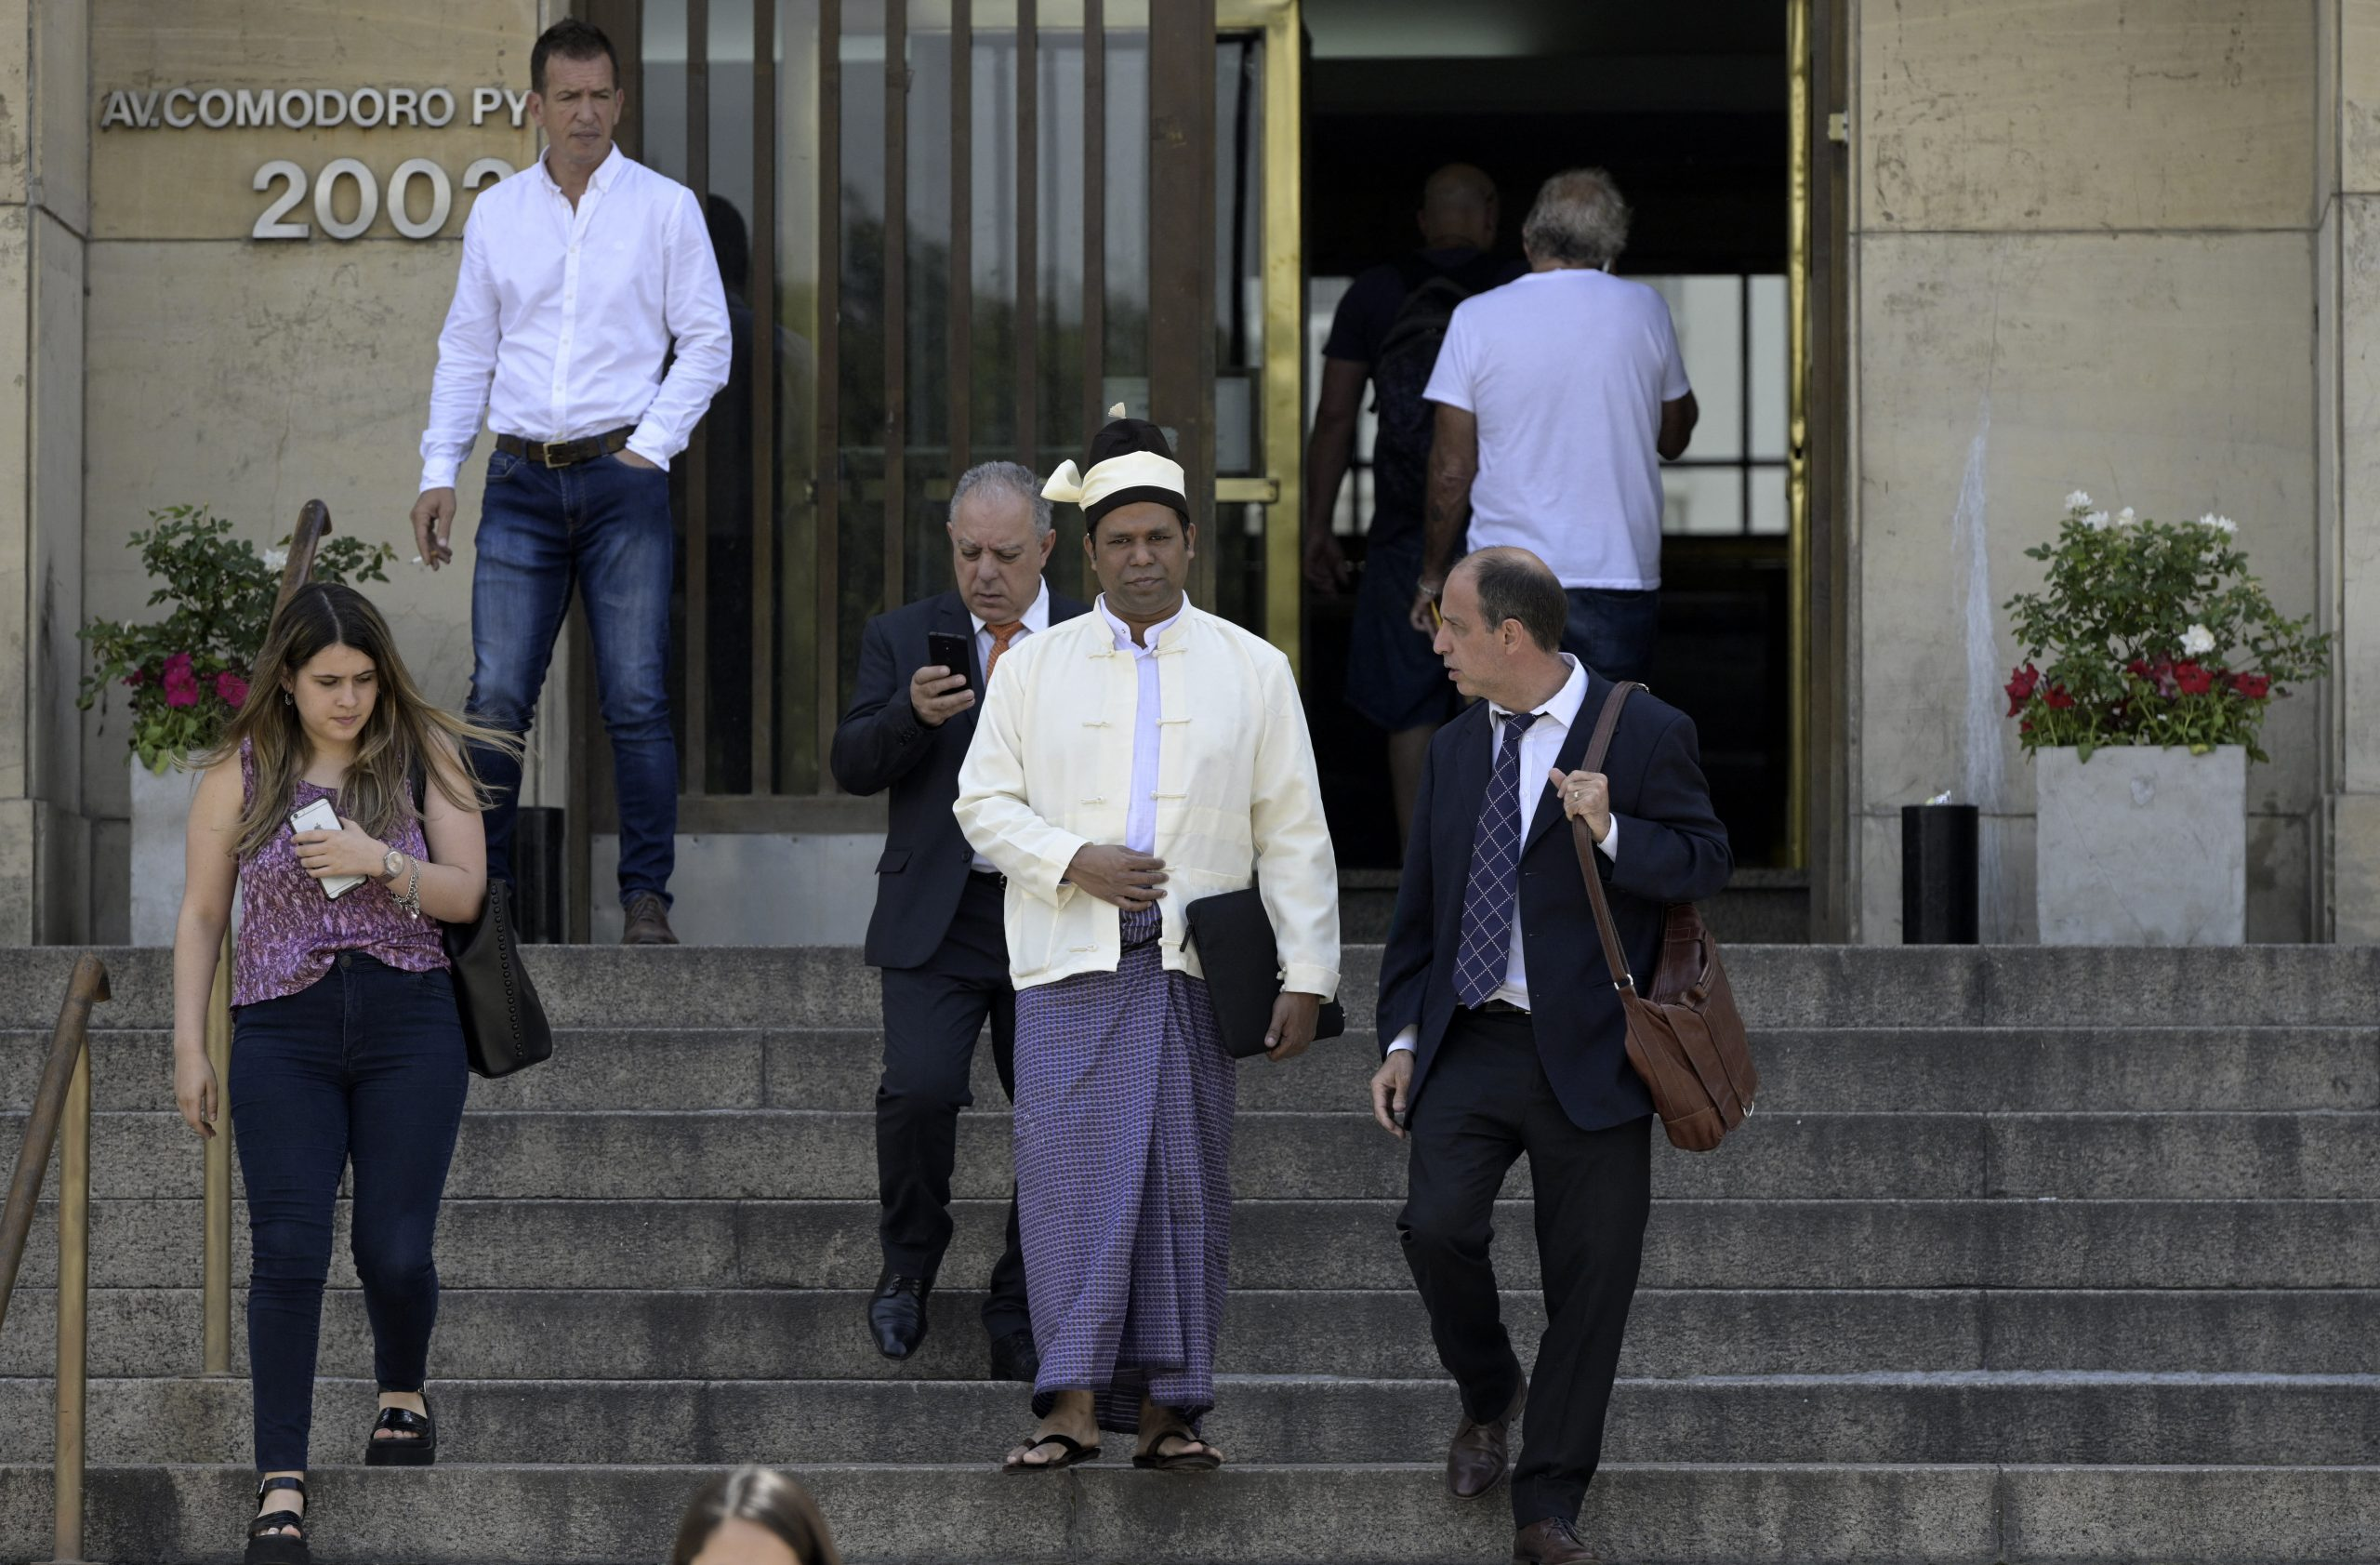 The President of The Burmese Rohingya Organisation UK , Tun Khin (L) and Argentine human rights lawyer Tomas Ojea Quintana (R) leave Argentine federal court in Buenos Aires on November 13, 2019. (AFP)